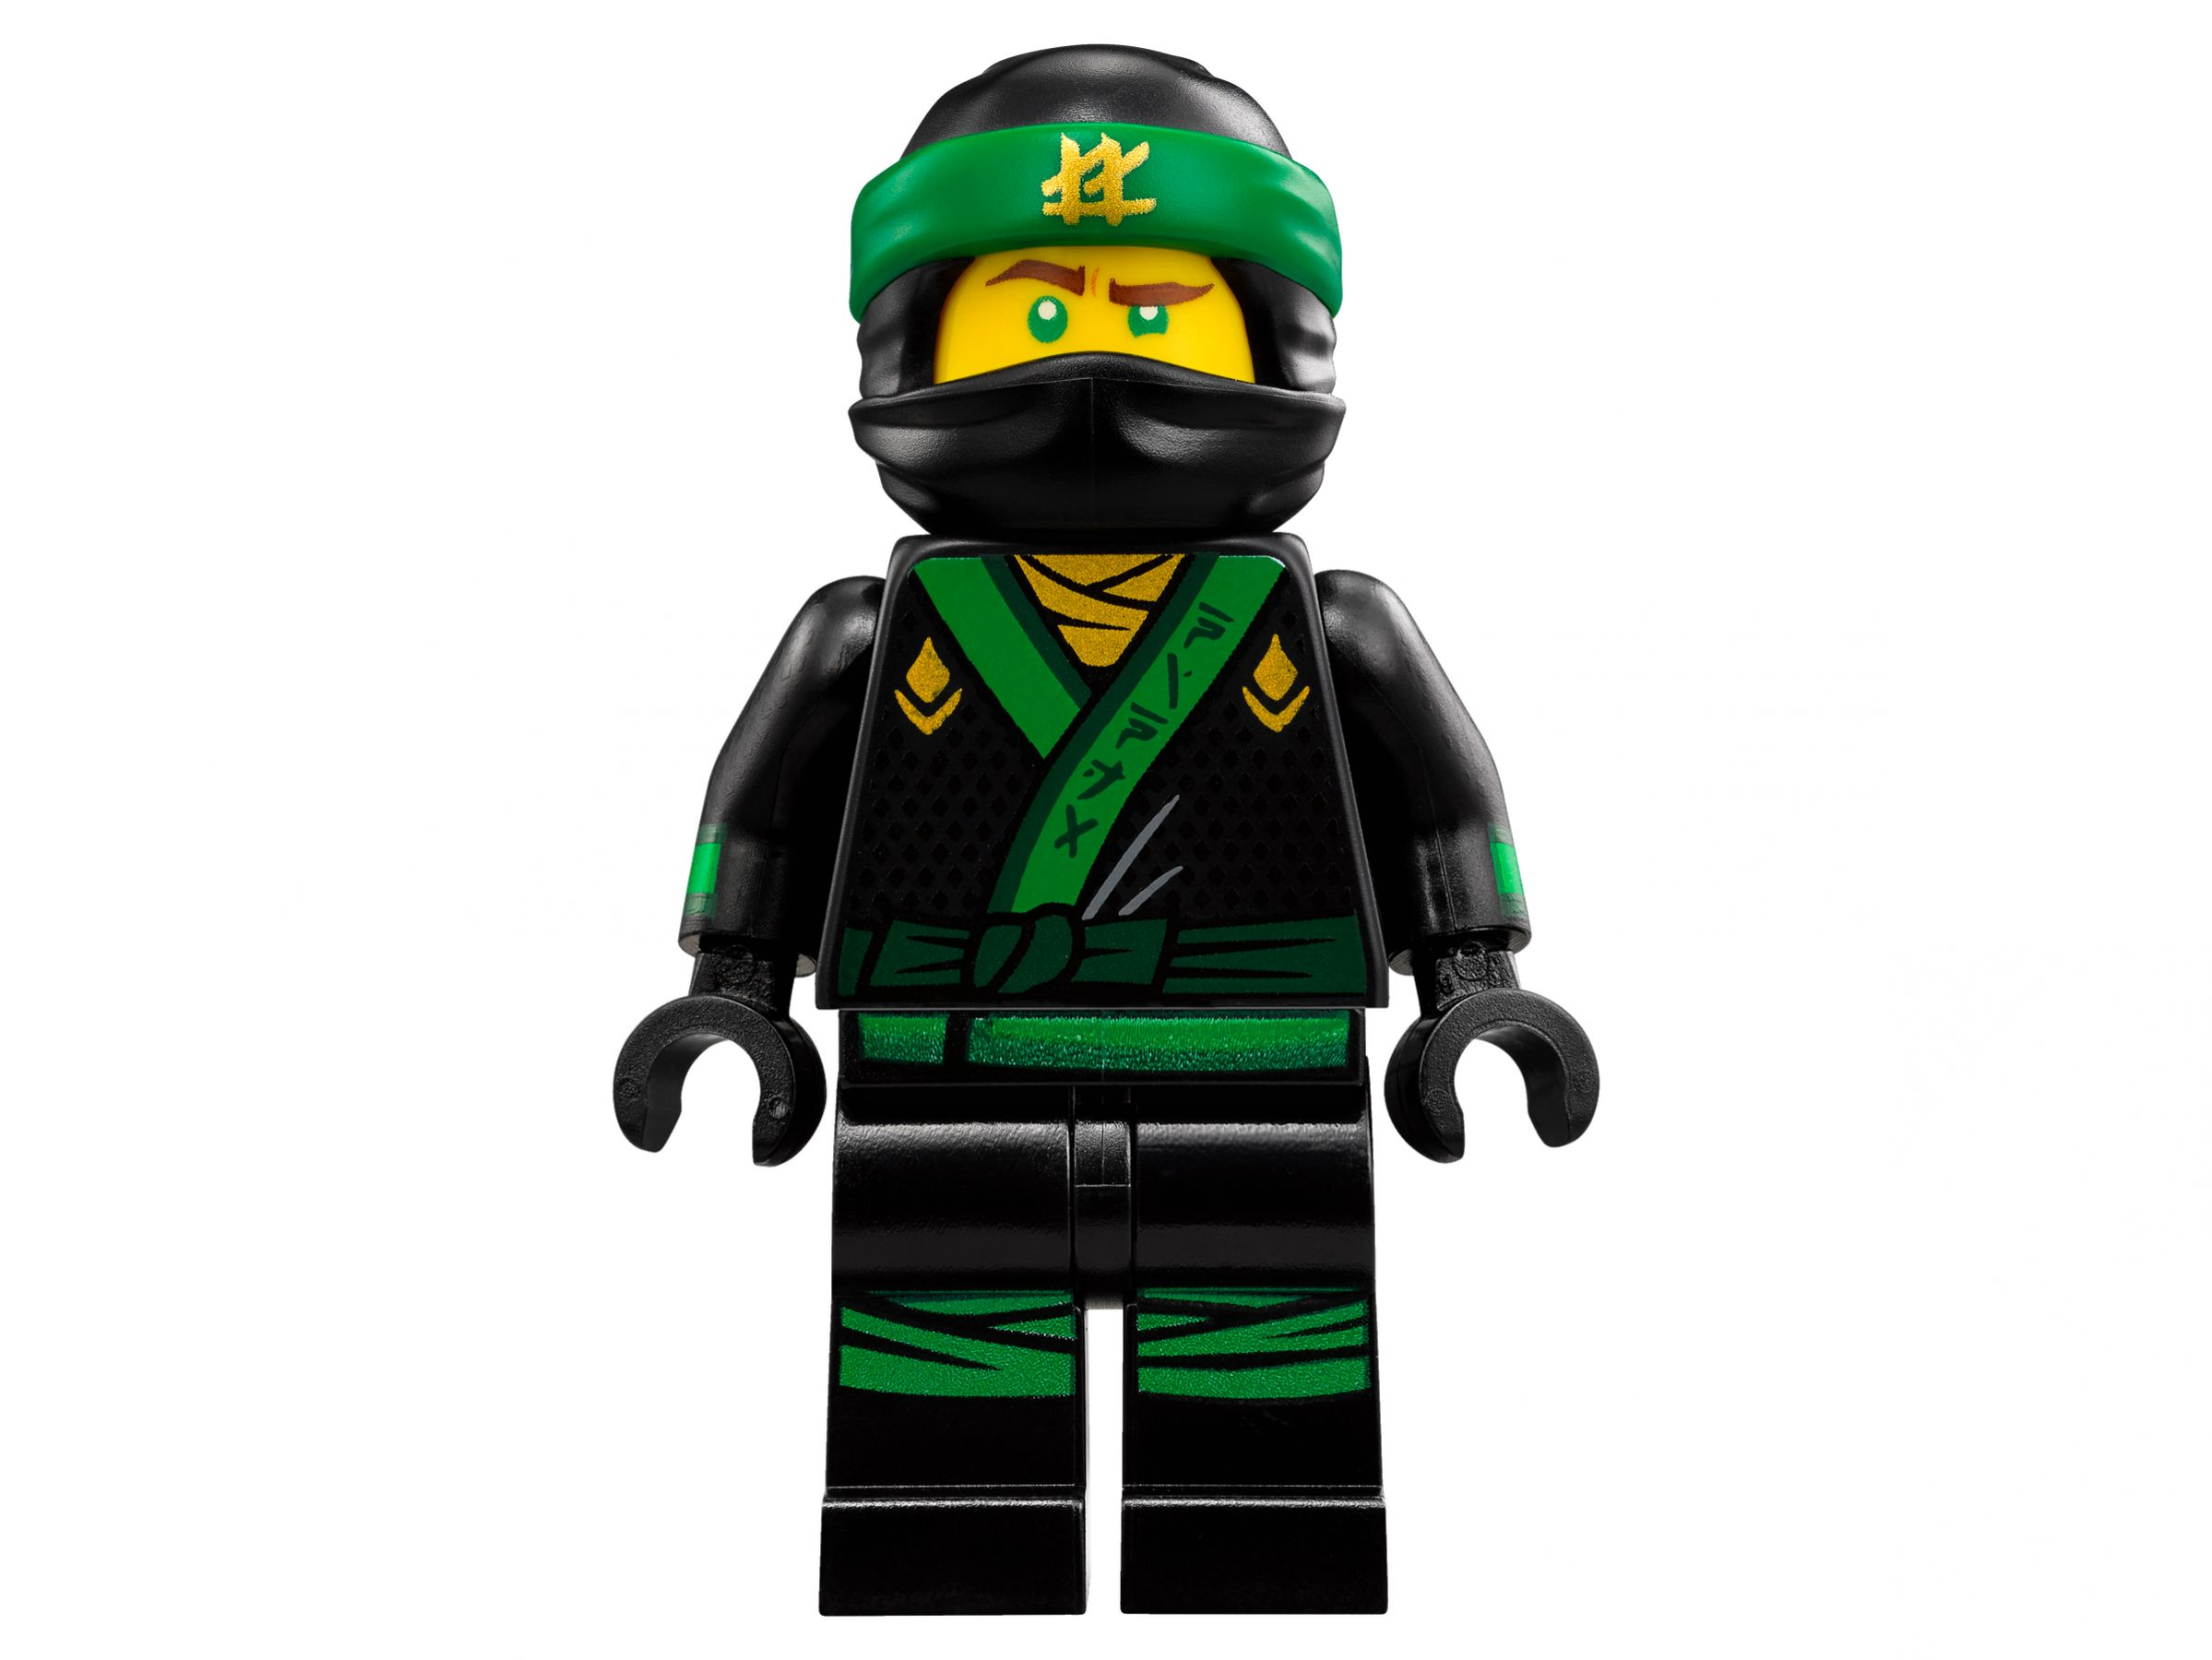 LEGO The LEGO Ninjago Movie 70613 Garmadon's Robo-Hai LEGO_70613_alt9.jpg